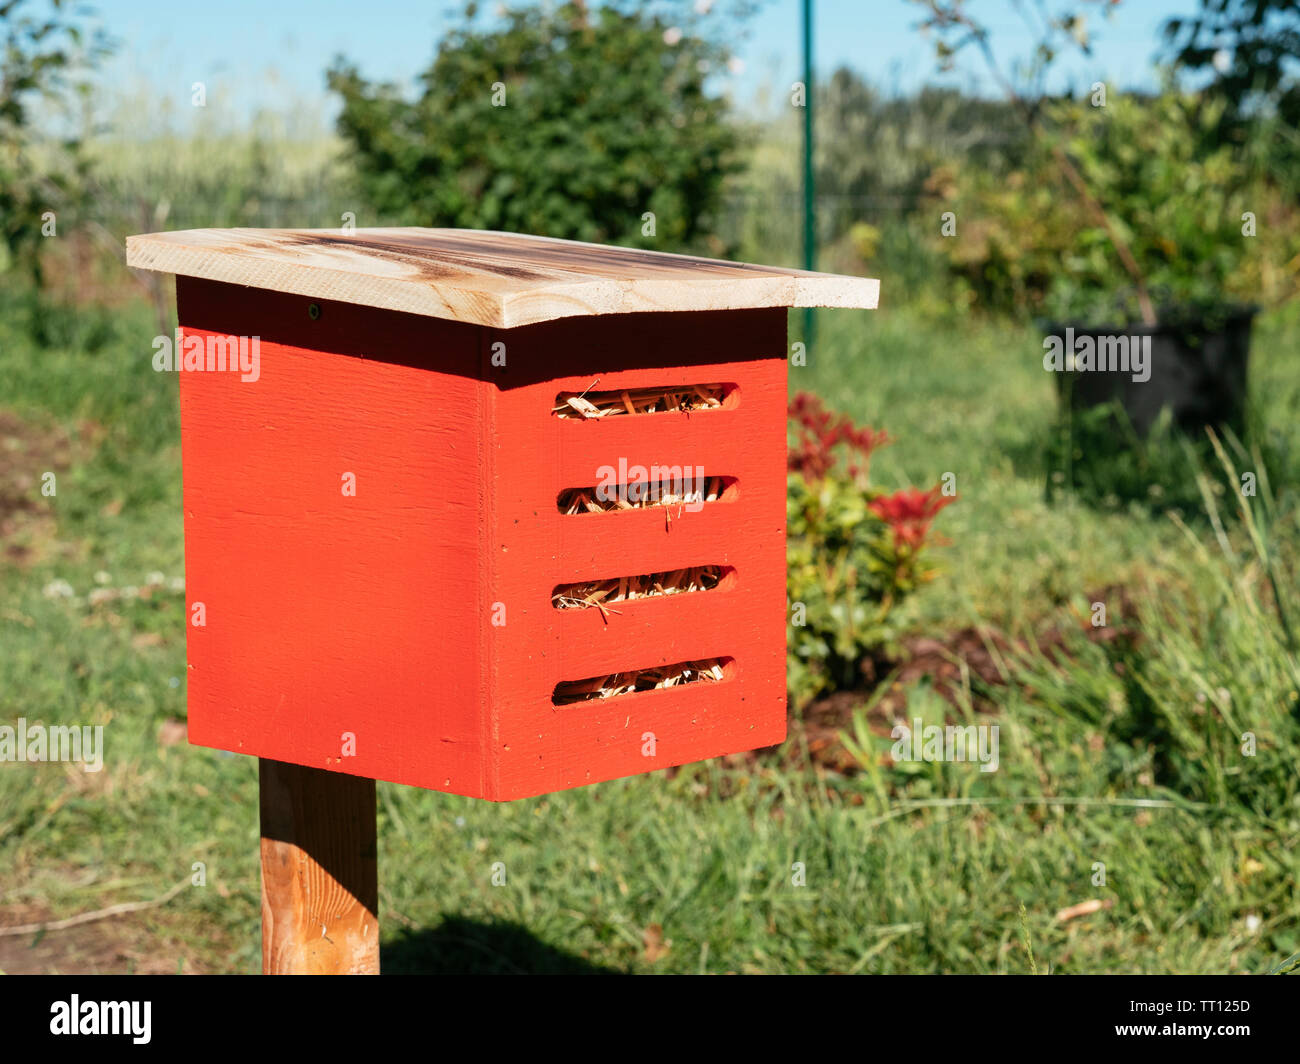 Red box as winter refuge for lacewings - Stock Image